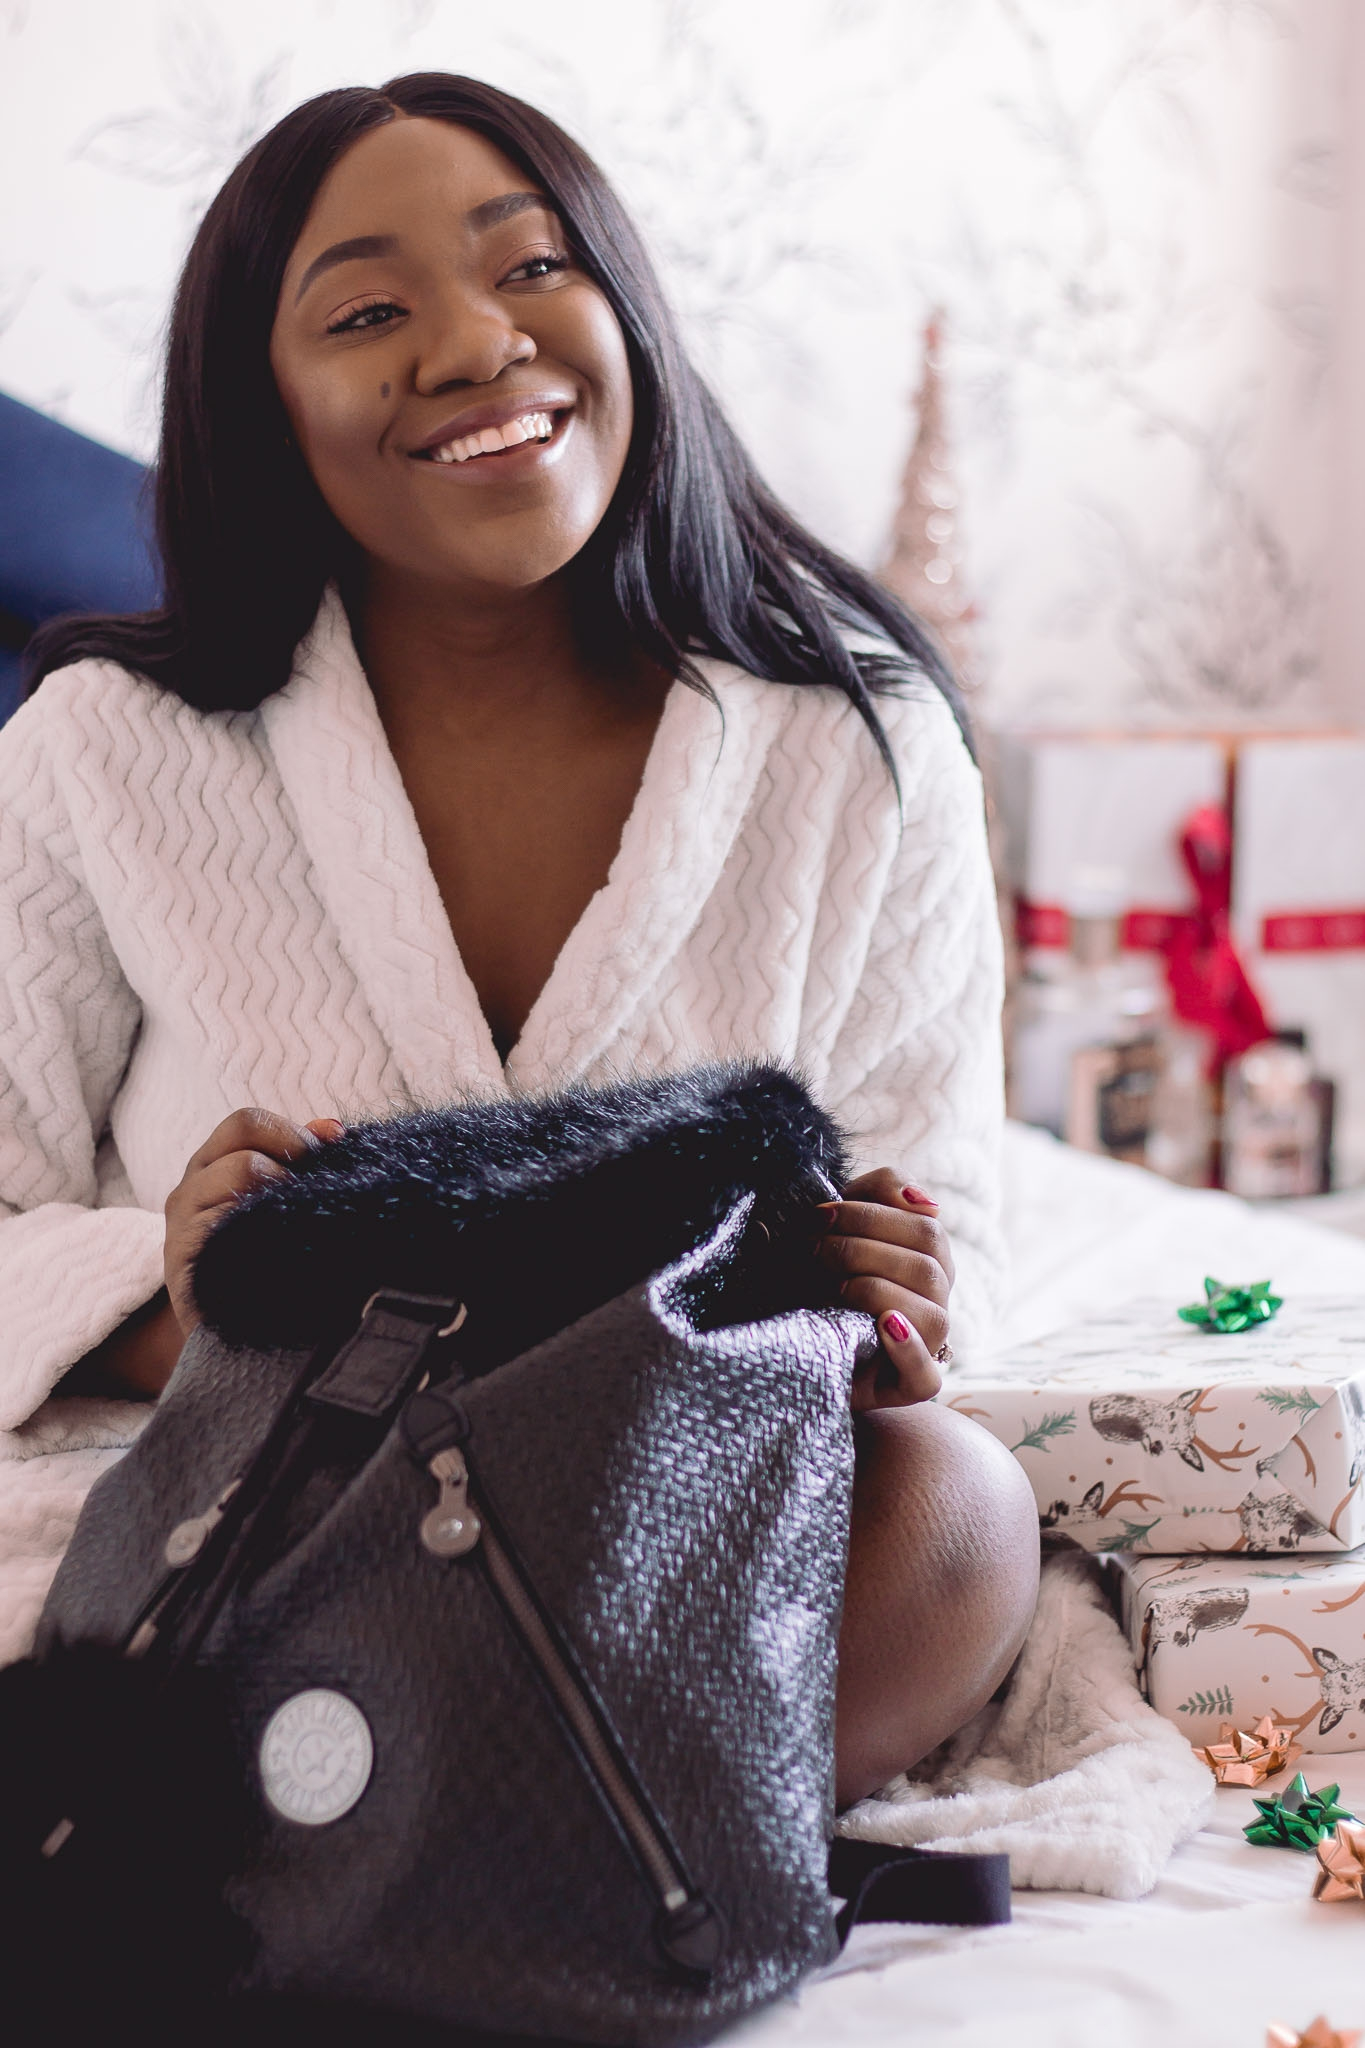 smiling girl sitting on bed with gift